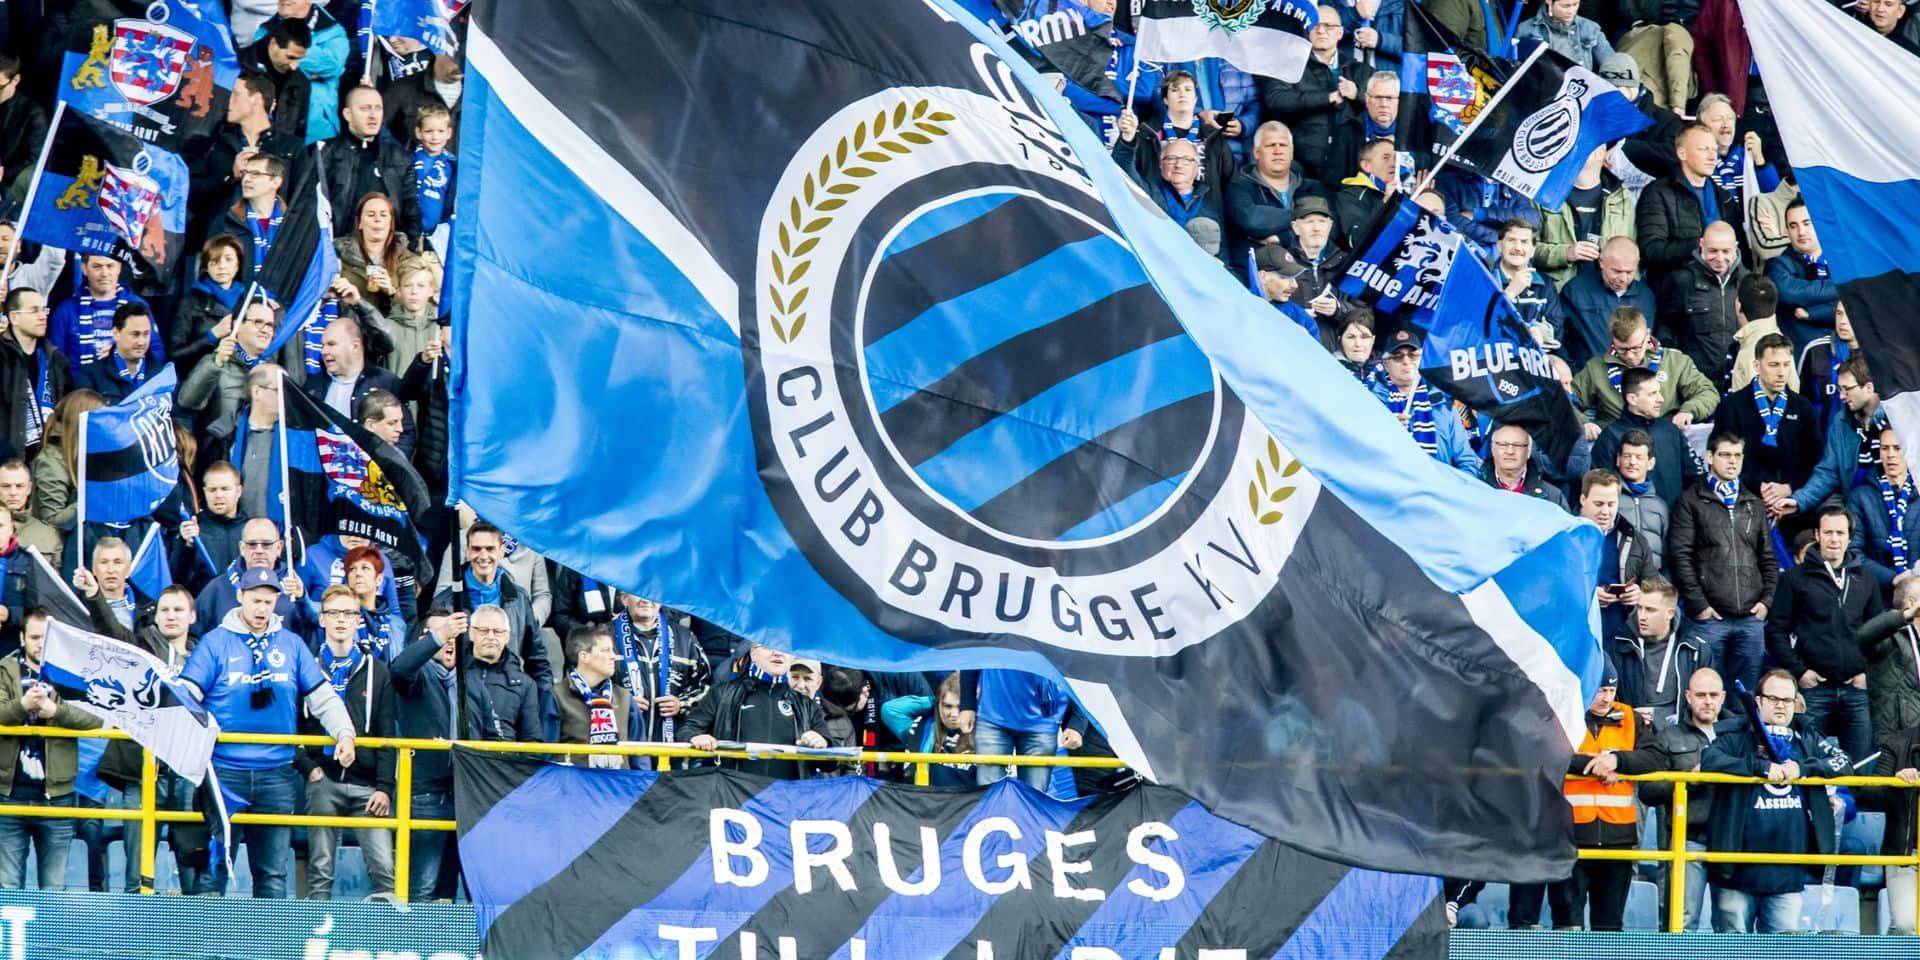 Le président du FC Bruges confirme le report de l'introduction en Bourse du club